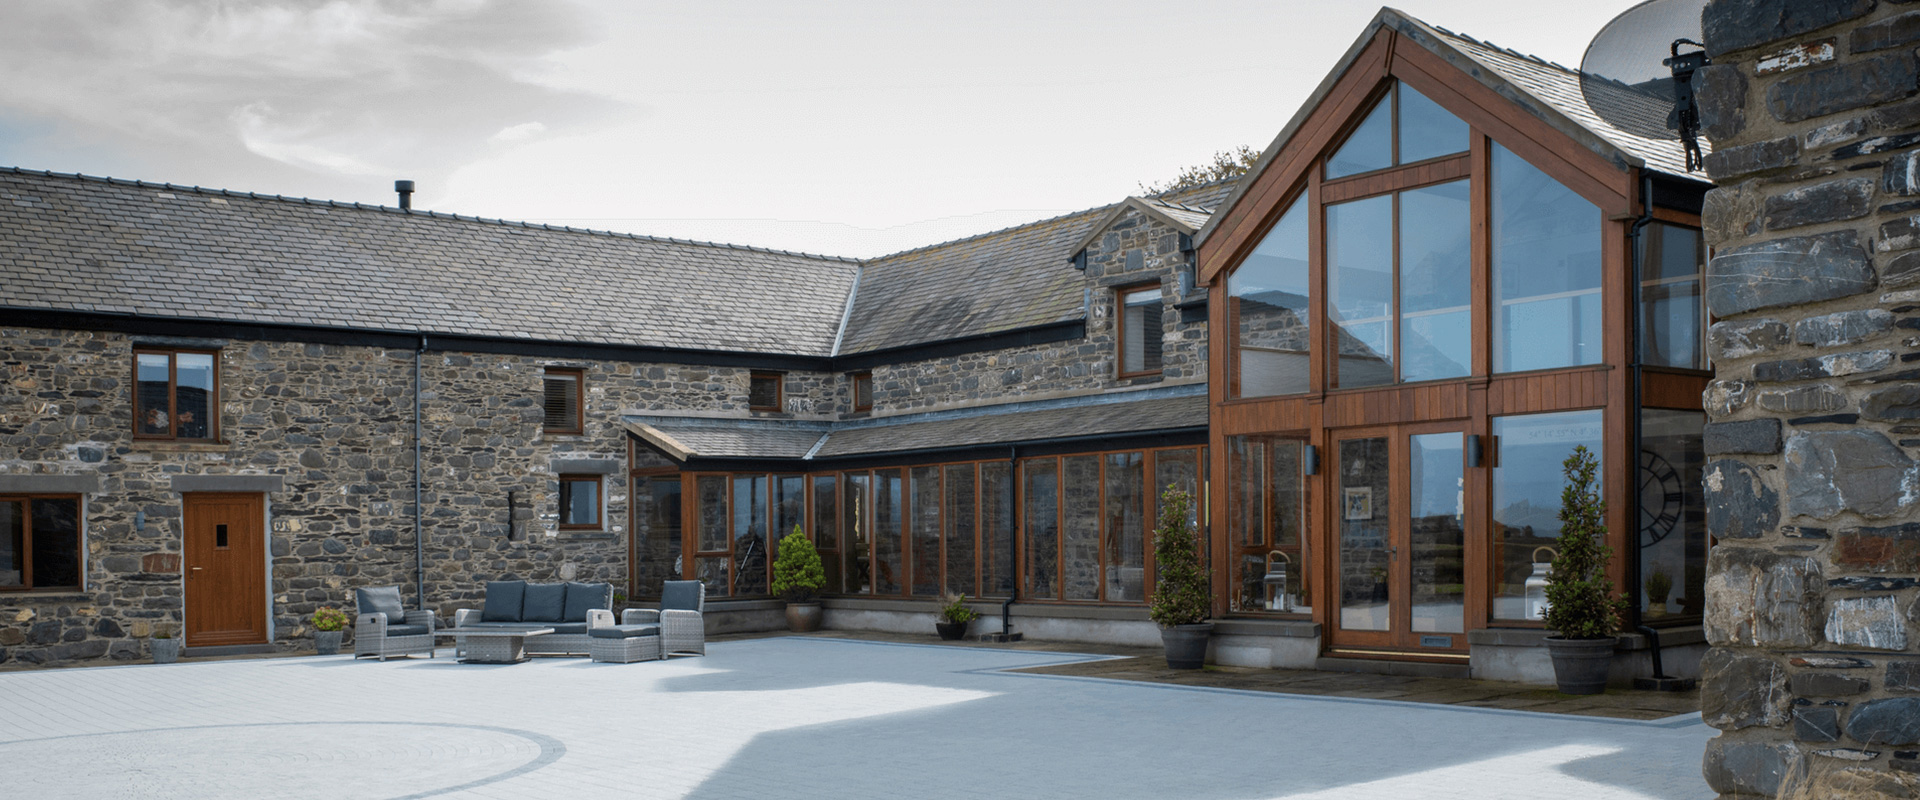 projects-barn-conversions1920x01